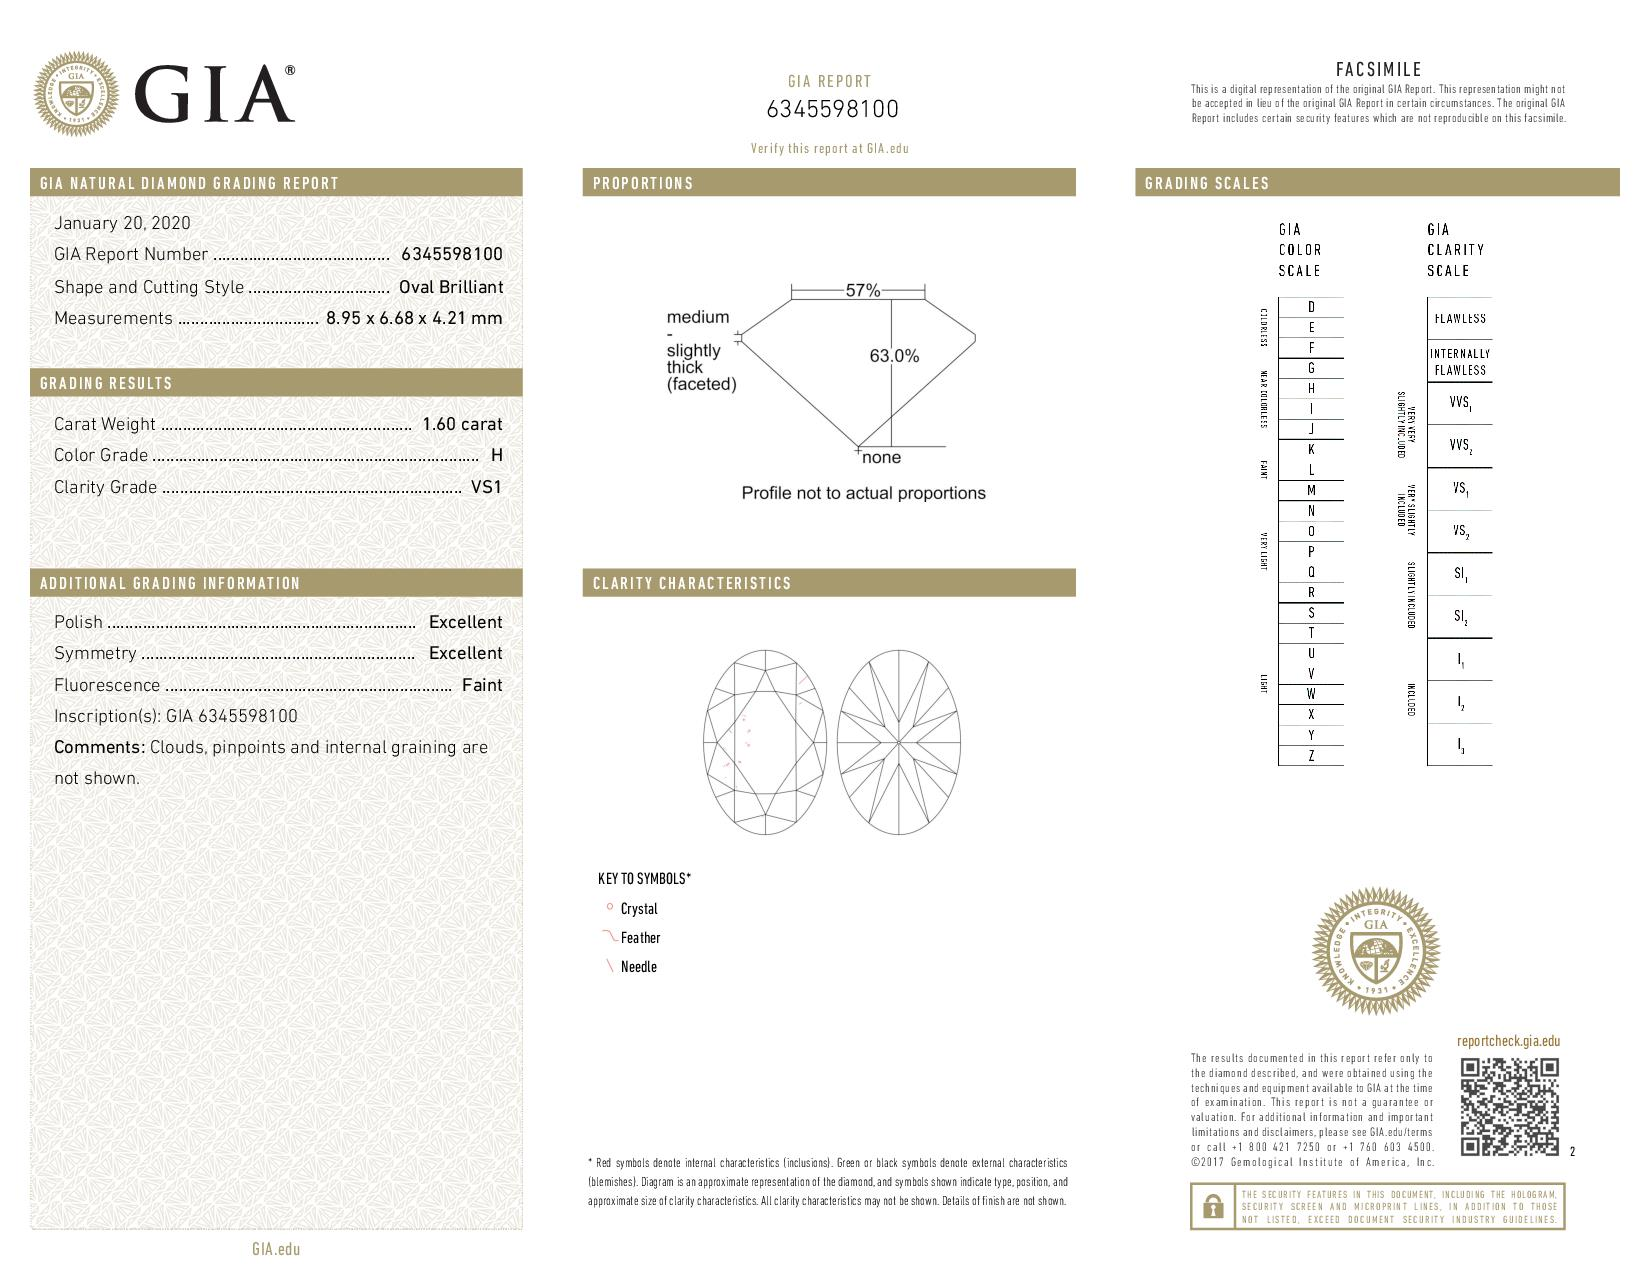 This is a 1.60 carat oval shape, H color, VS1 clarity natural diamond accompanied by a GIA grading report.